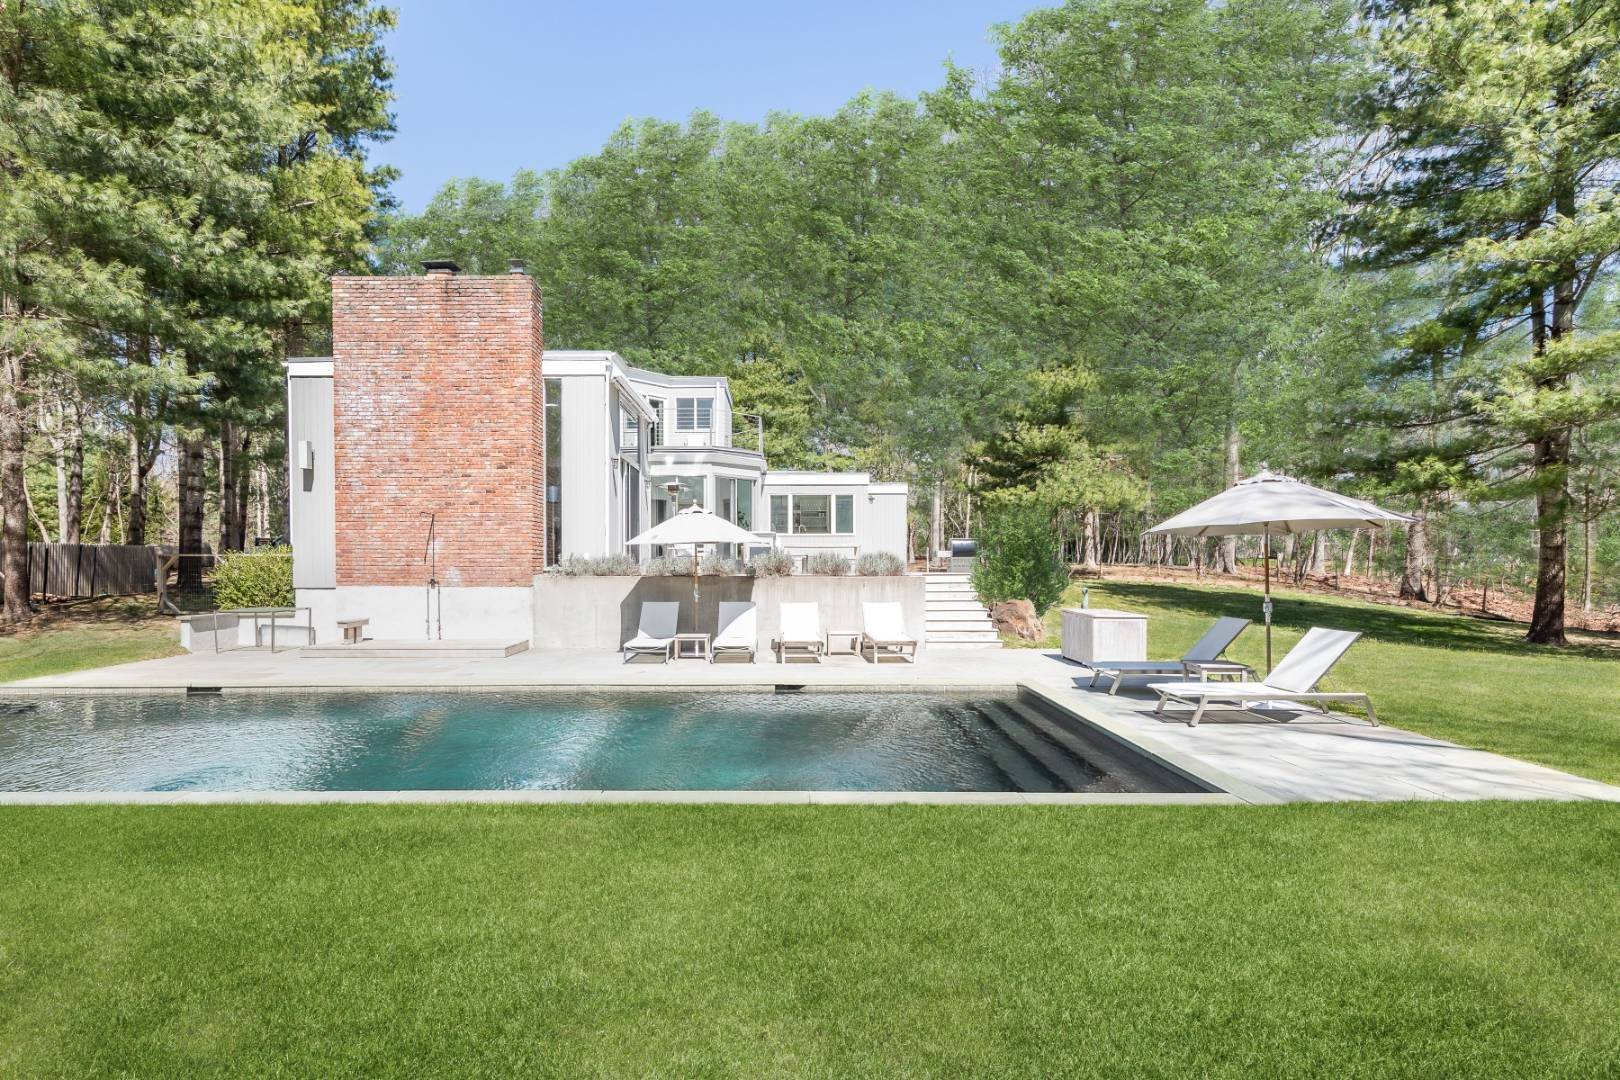 Single Family Home for Sale at Private & Renovated Contemporary 2 Miles From Eh Village 217 Bull Path, East Hampton, NY 11937